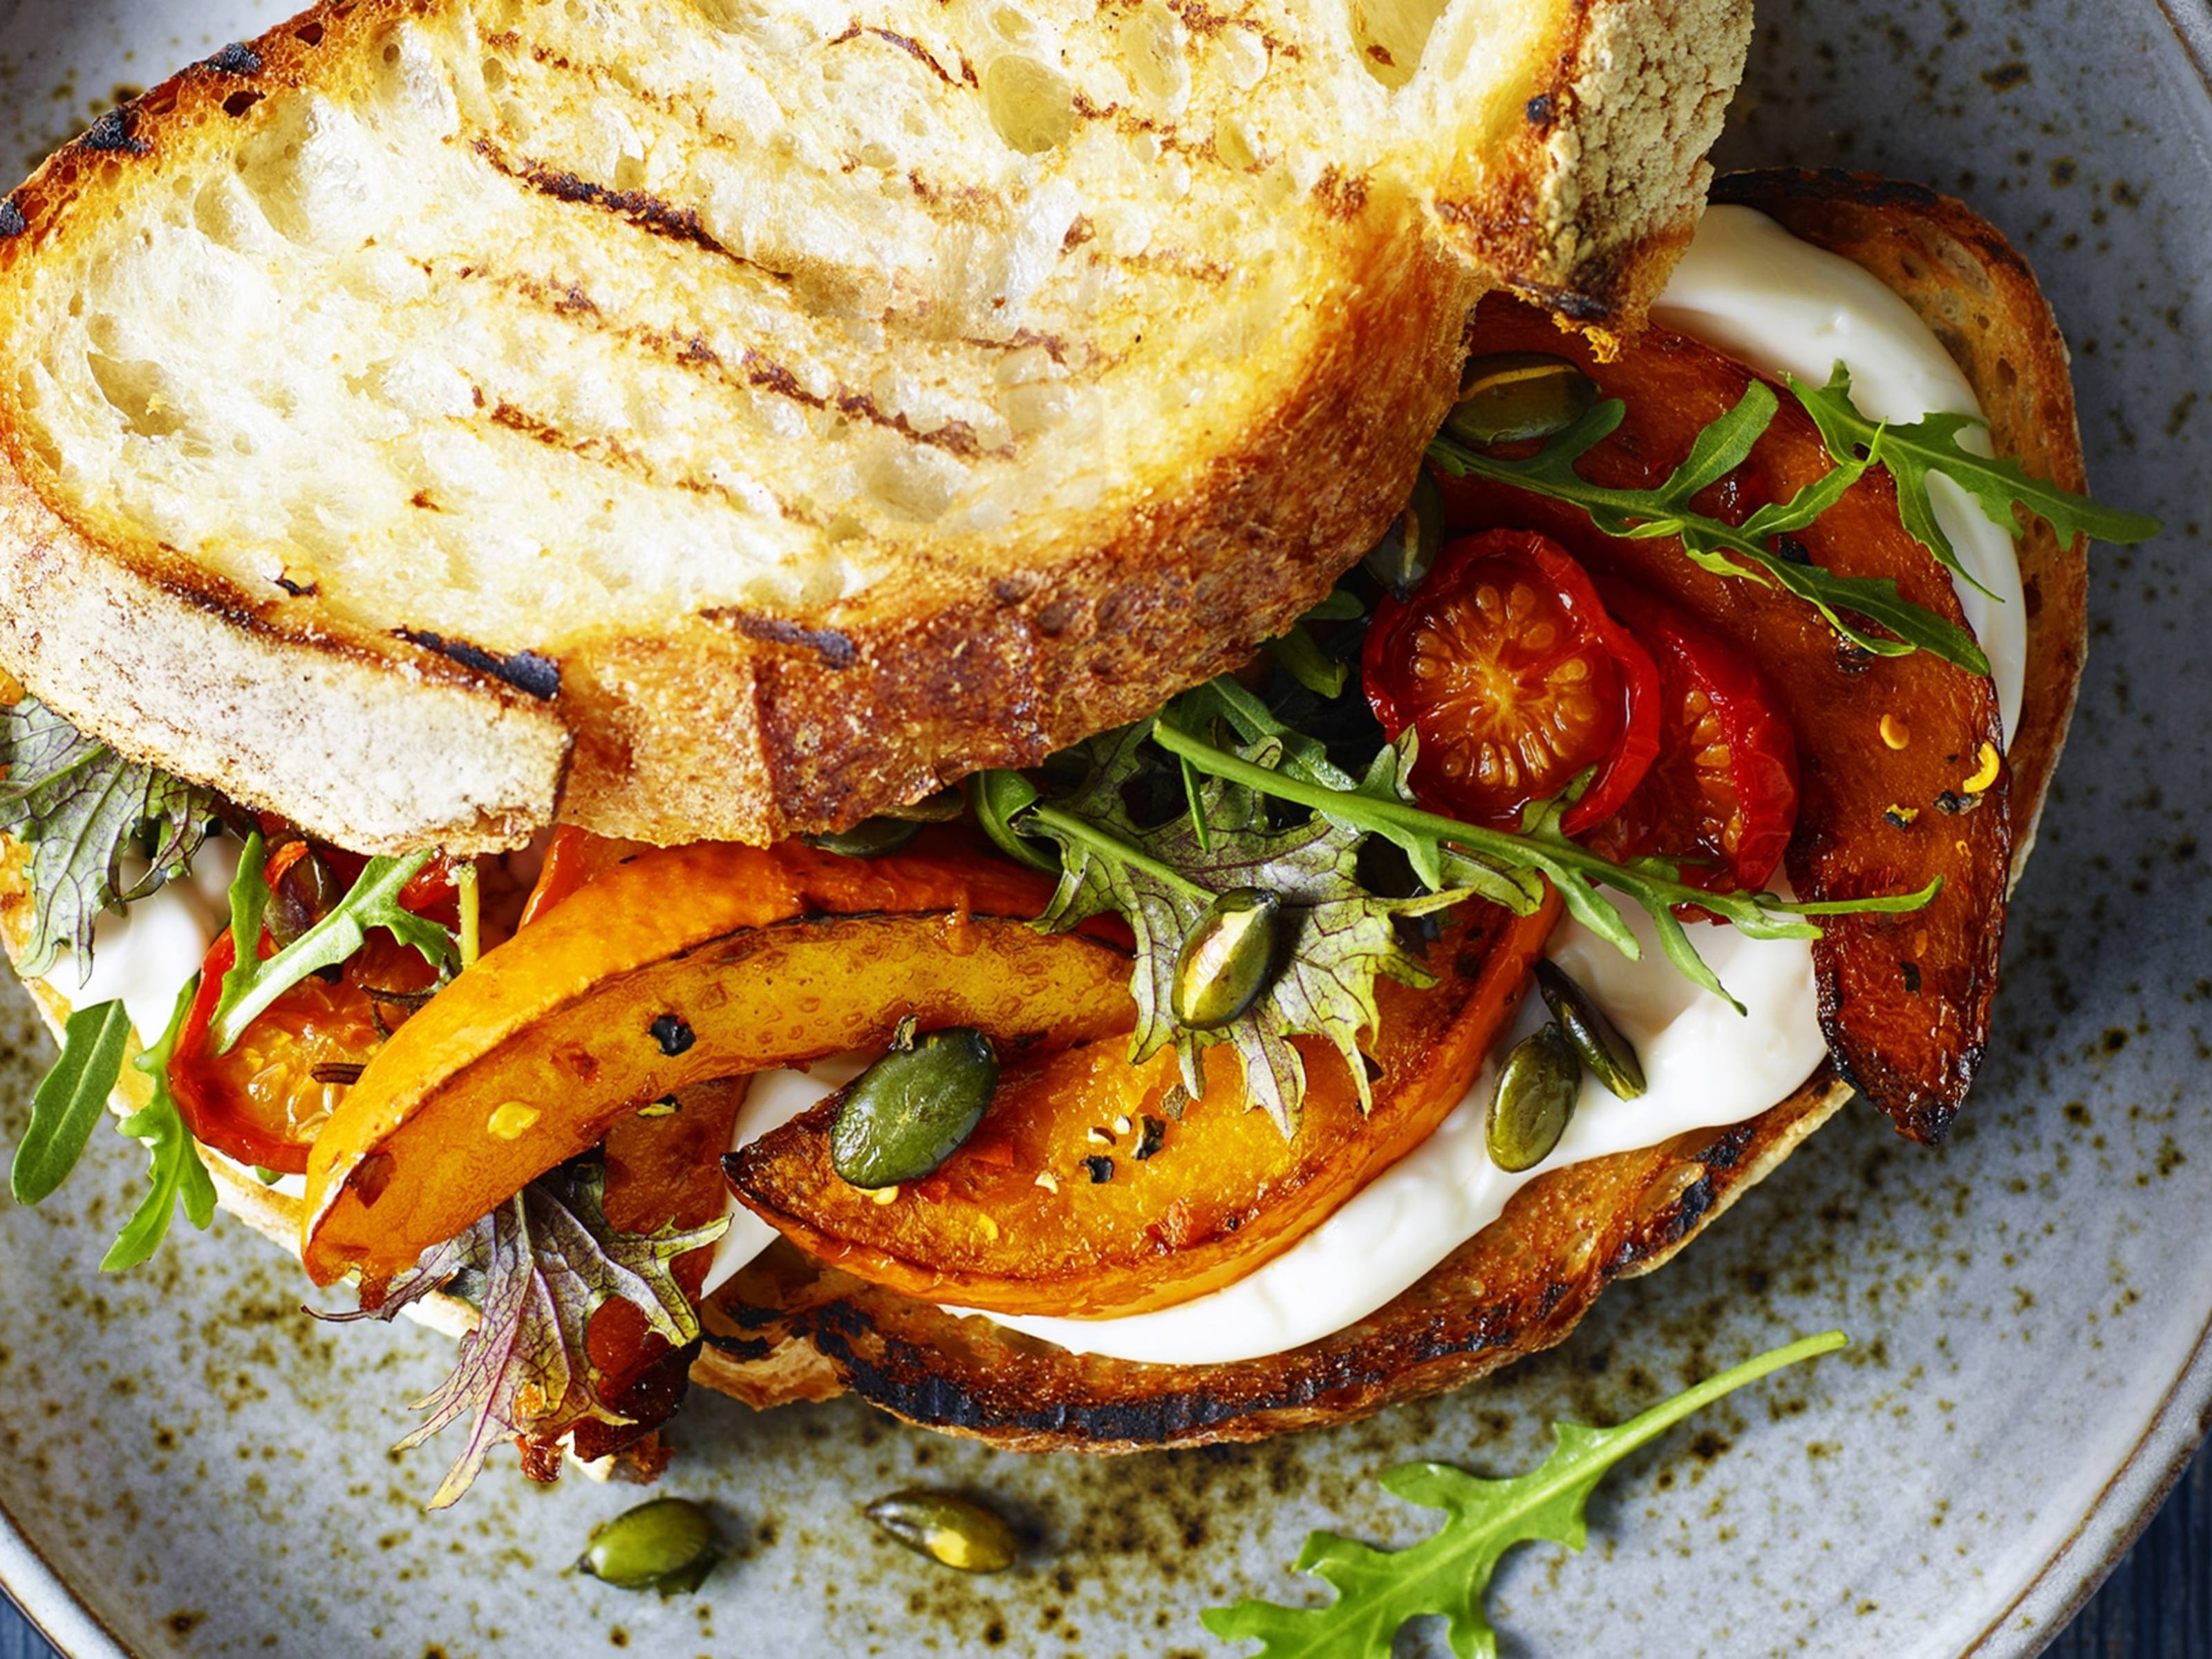 Rustic Roasted Pumpkin Sandwich